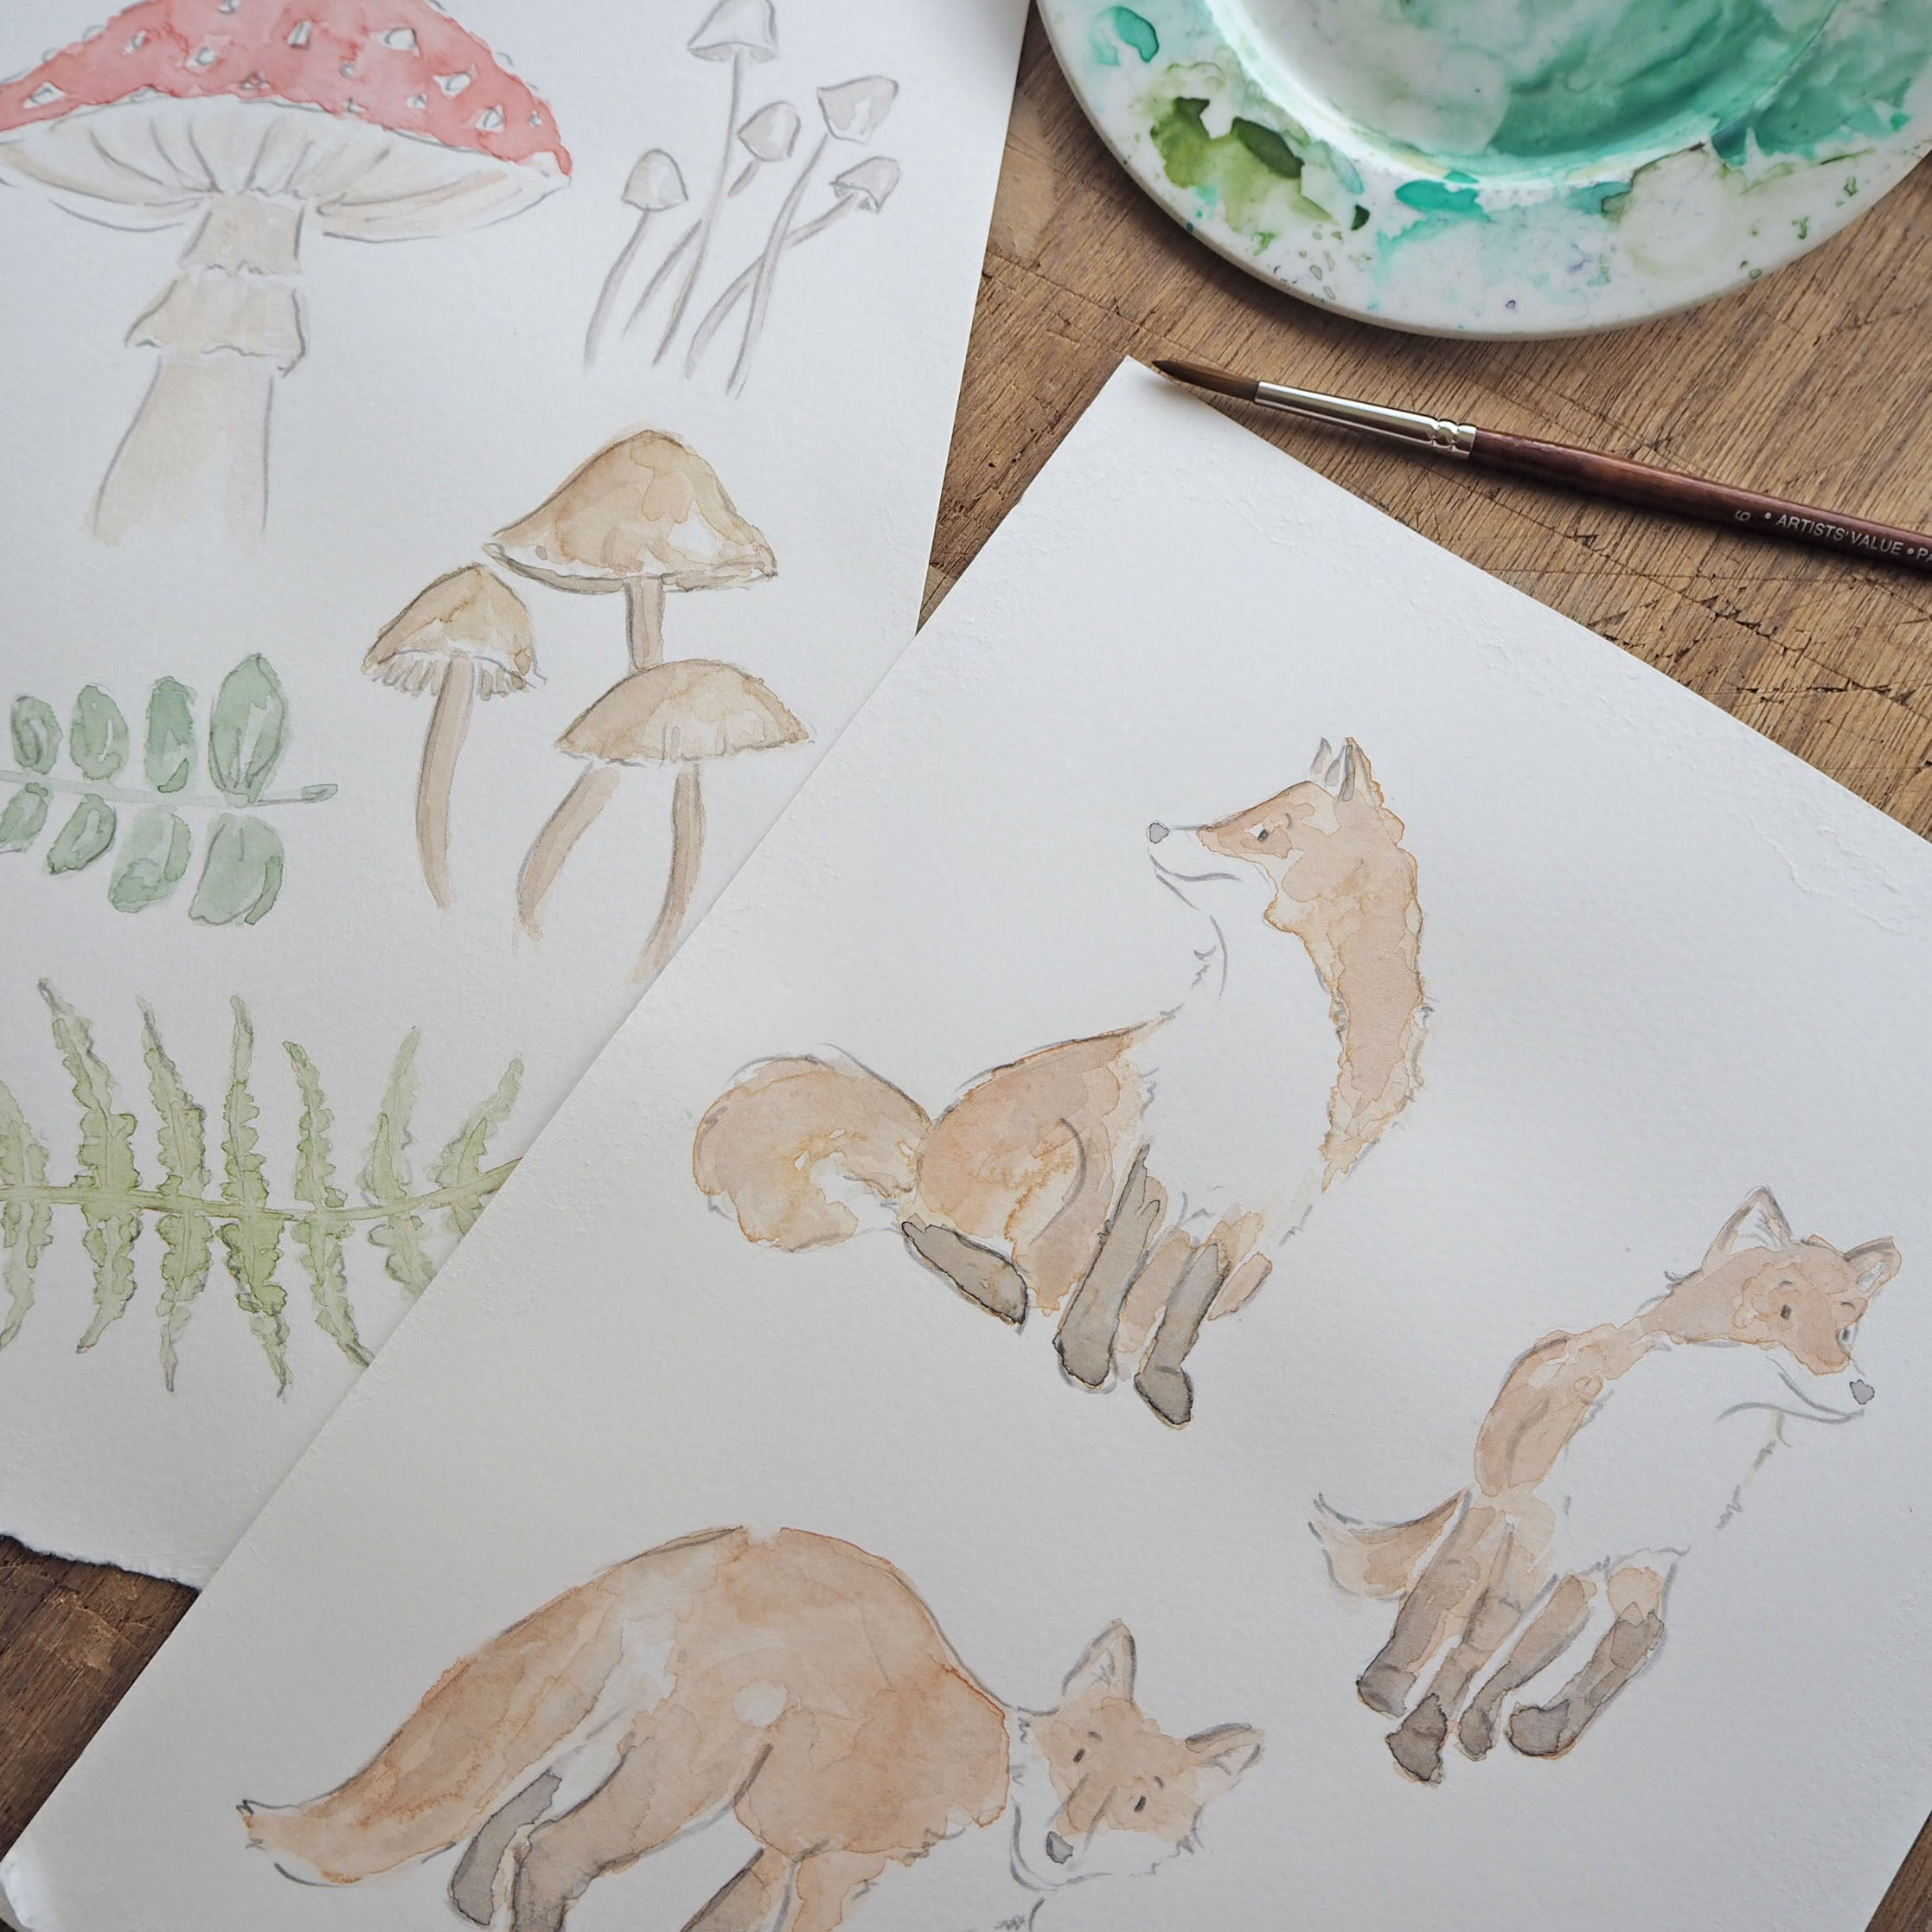 watercolour illustrations of woodland animals